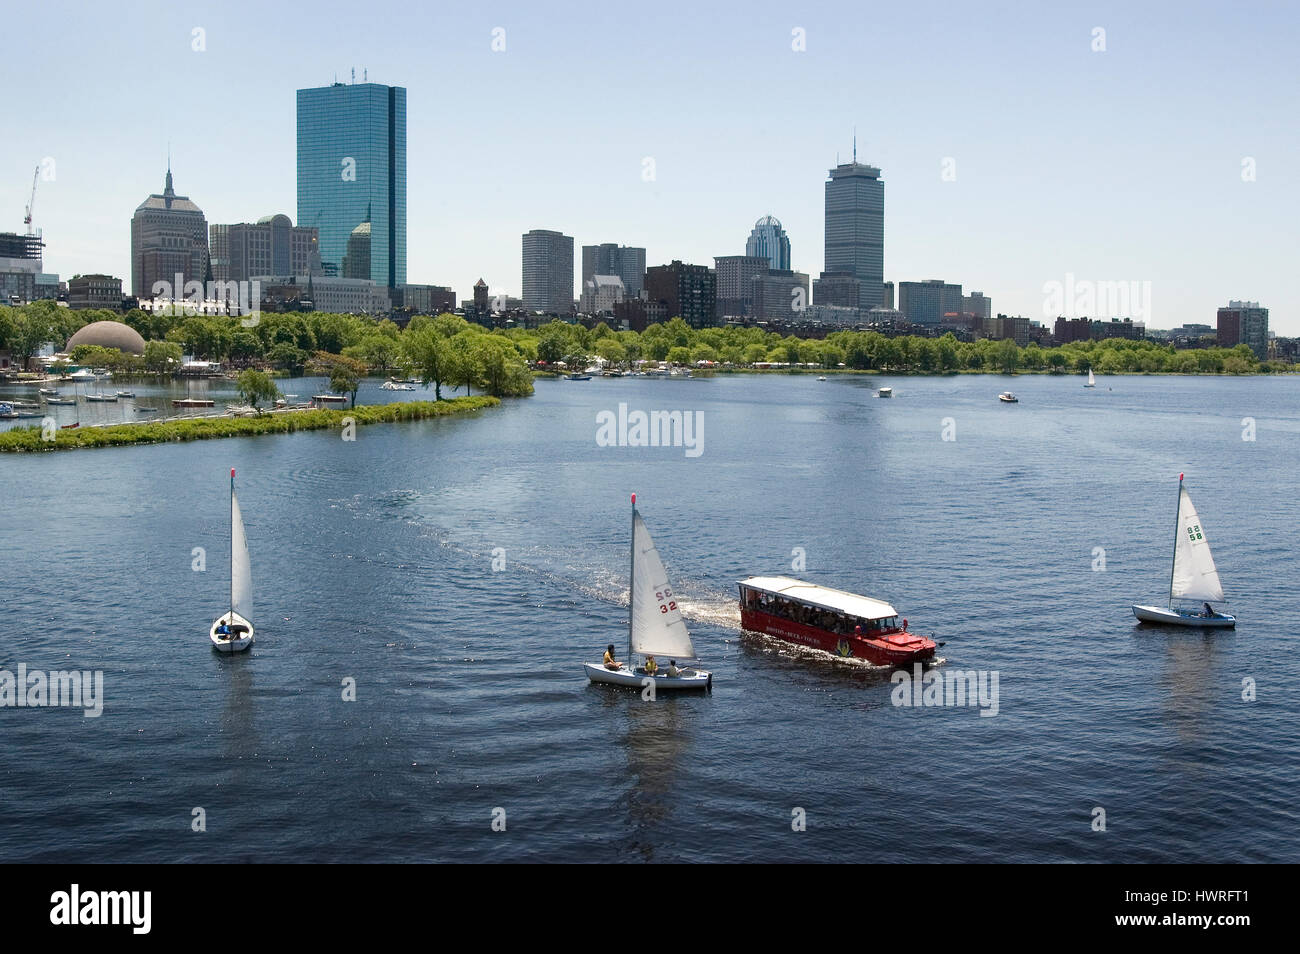 The Back Bay skyline and the Charles River from the Longfellow Bridge -   Community Boating Sailboats and a Duck Tour boat are in the foreground, Stock Photo